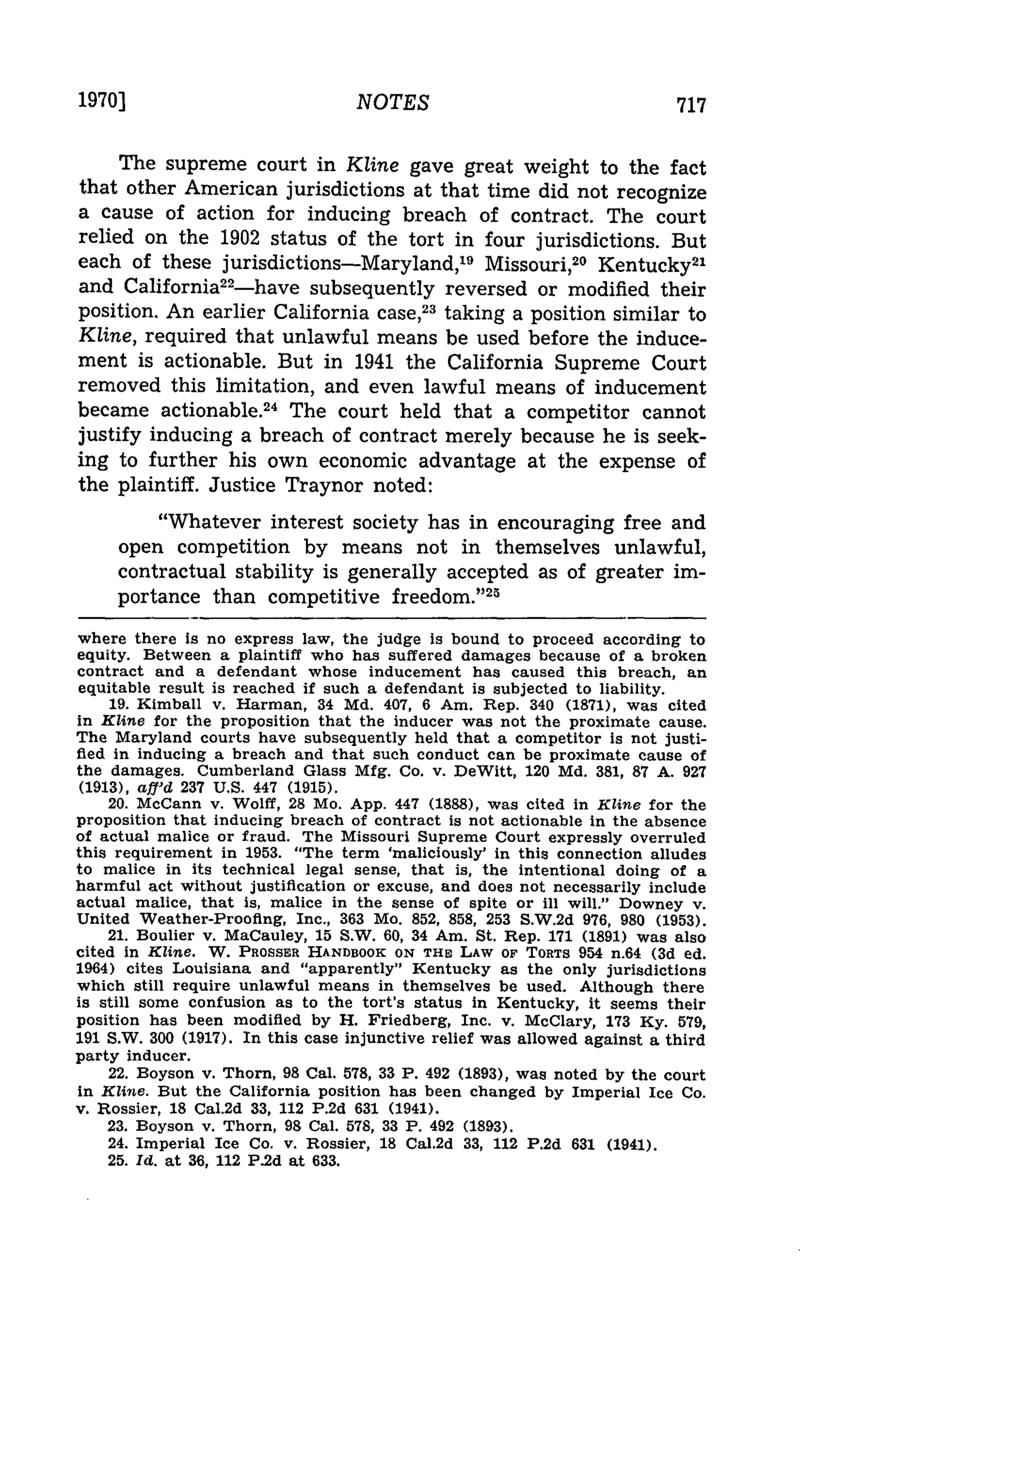 1970] NOTES The supreme court in Kline gave great weight to the fact that other American jurisdictions at that time did not recognize a cause of action for inducing breach of contract.